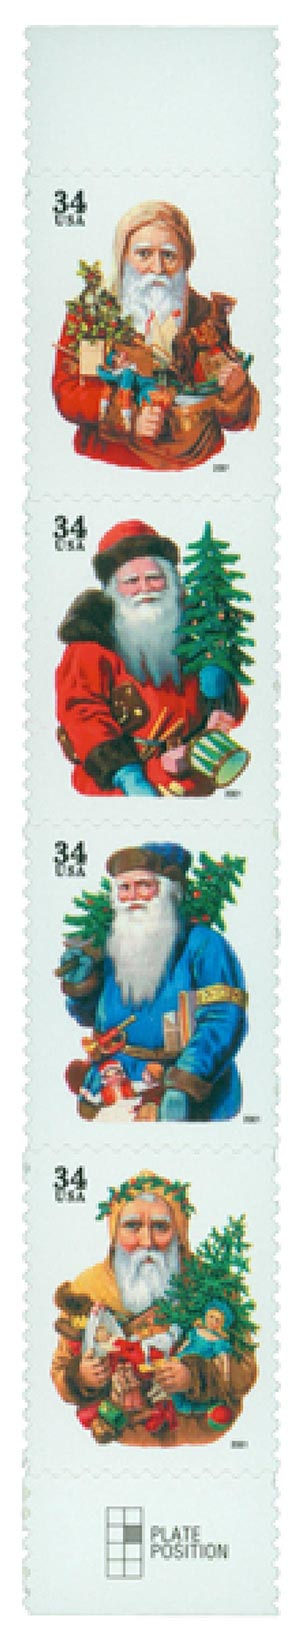 2001 34c Contemporary Christmas: Santas, black denomination